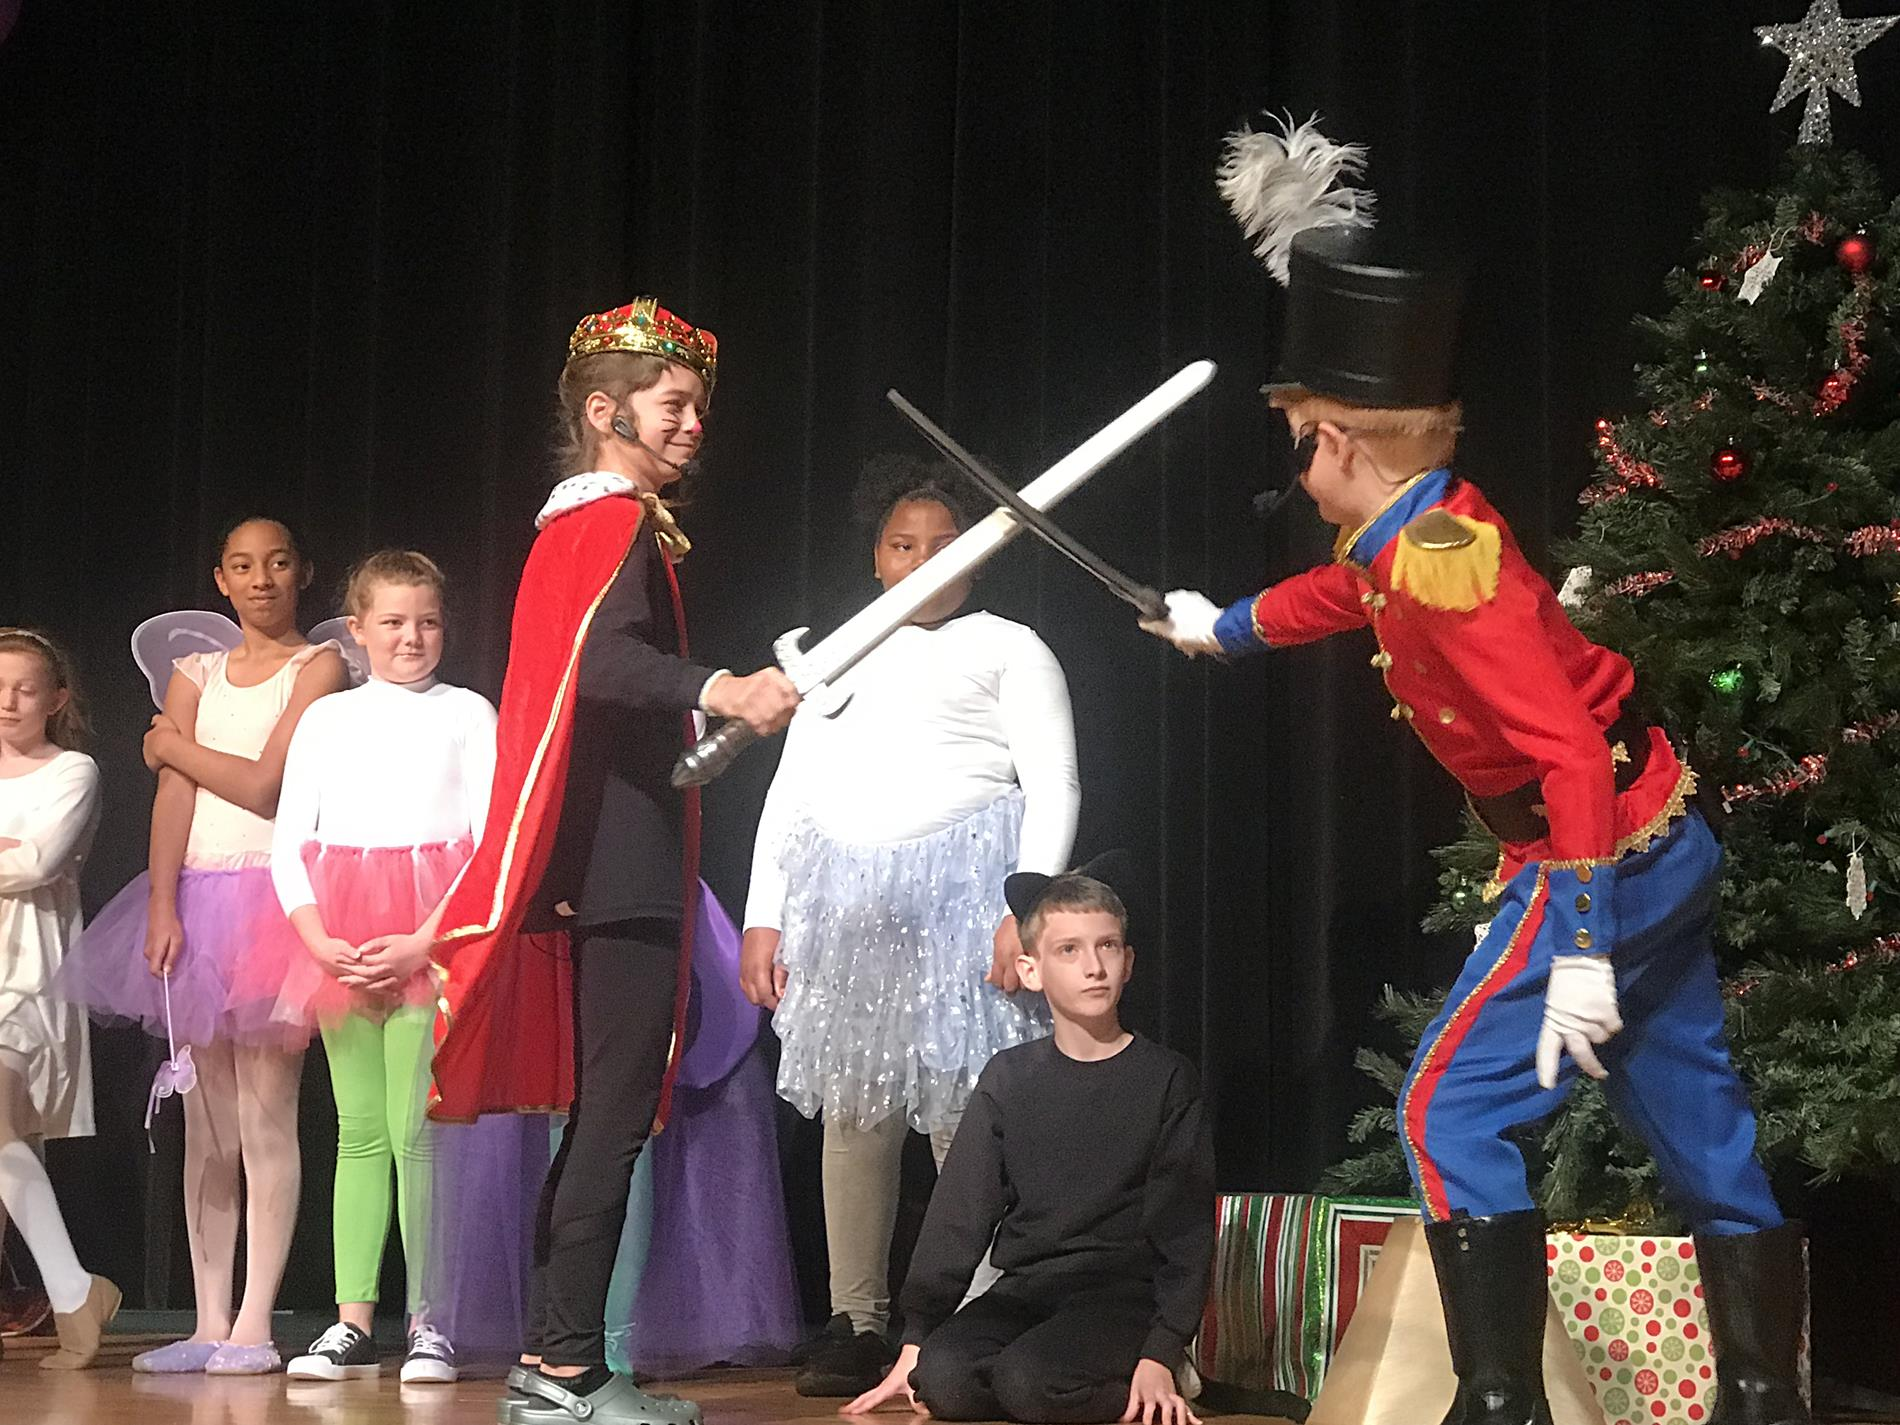 Nutcracker performance